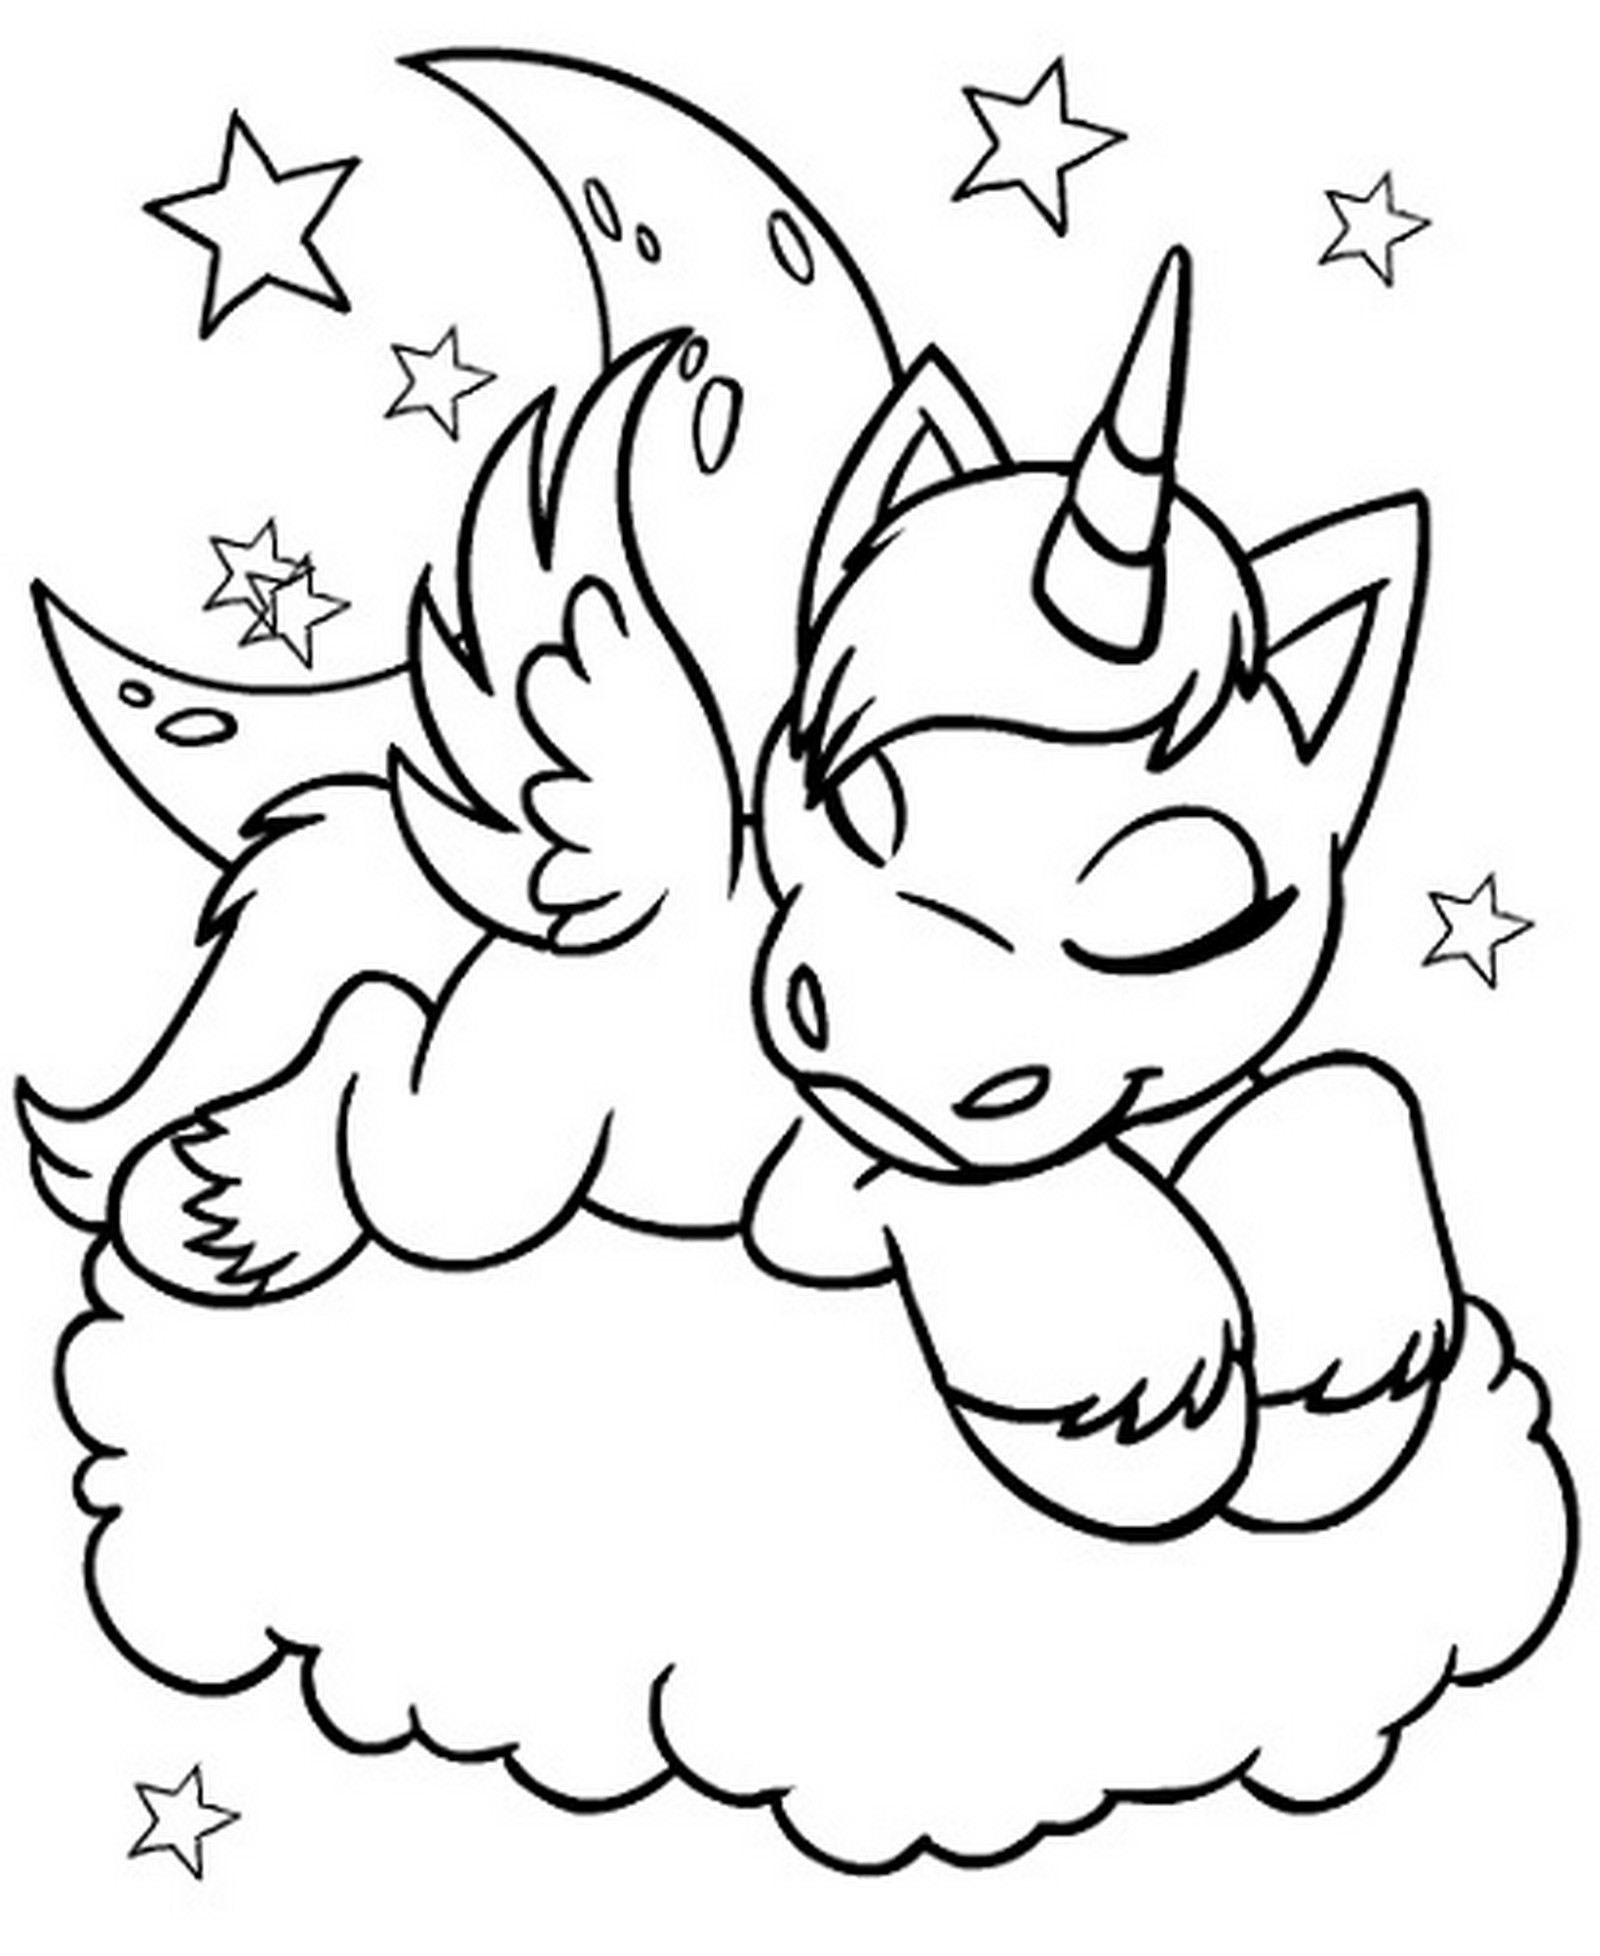 unicorn printables cute unicorn with watermelon coloring pages for you printables unicorn